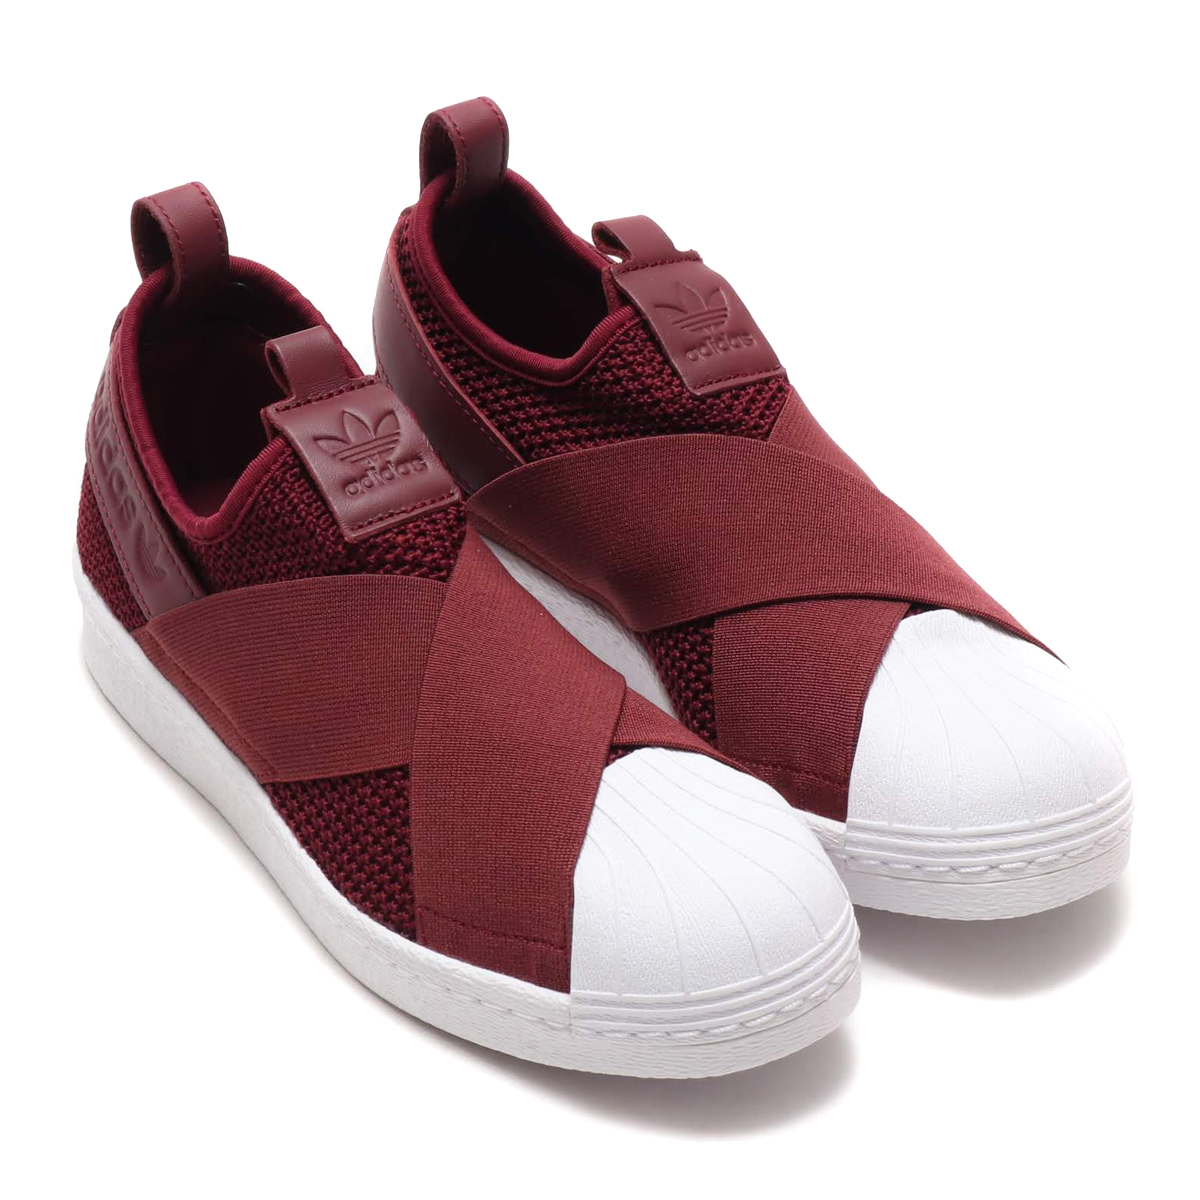 big sale 3c857 2b6cc adidas Originals SS Slip On W (Adidas originals superstar slip-ons W) RED  NIGHT RED NIGHT RUNNING WHITE 18FW-I